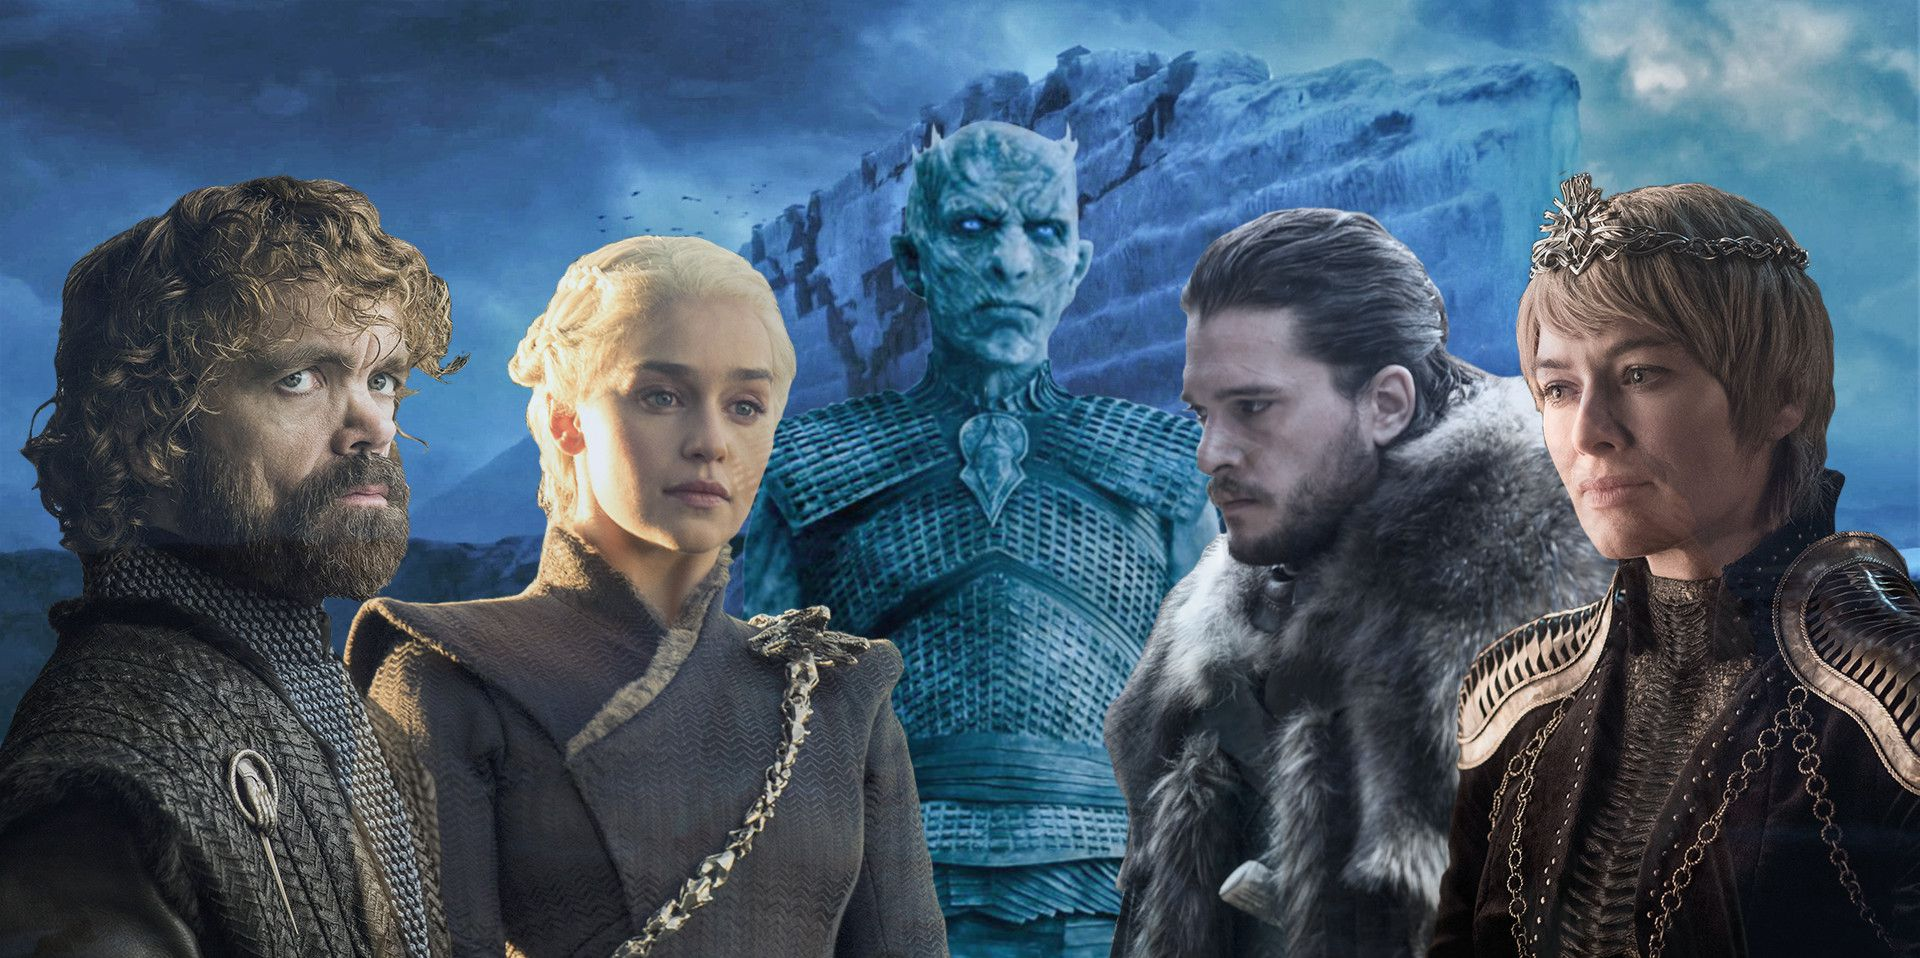 This Is Why Watching Game Of Thrones Makes You Potential 'Candidate For Hell' 1